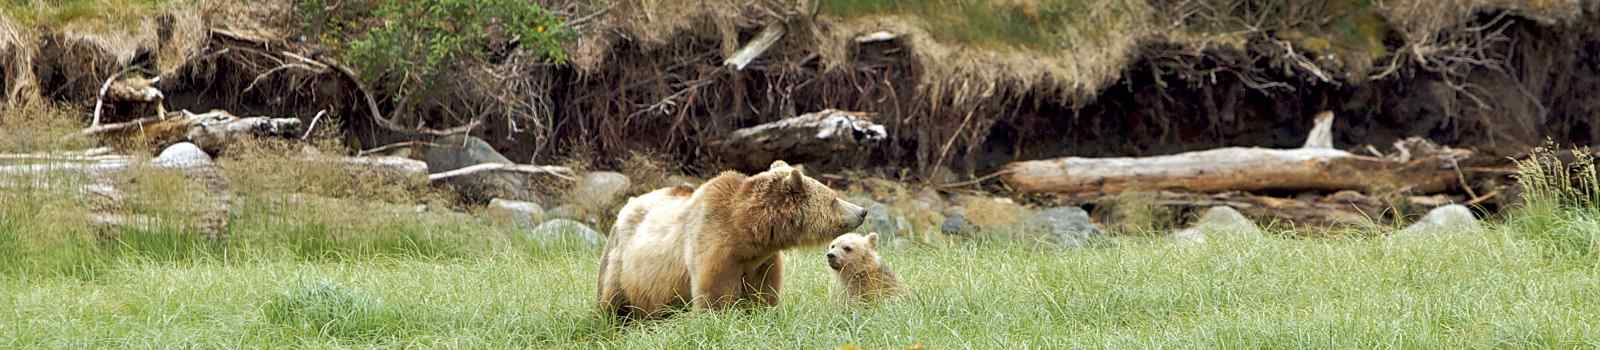 CAD-SACACOMIE Kanada Vancouver Island Grizzly bear in Canadian nature playing with cub